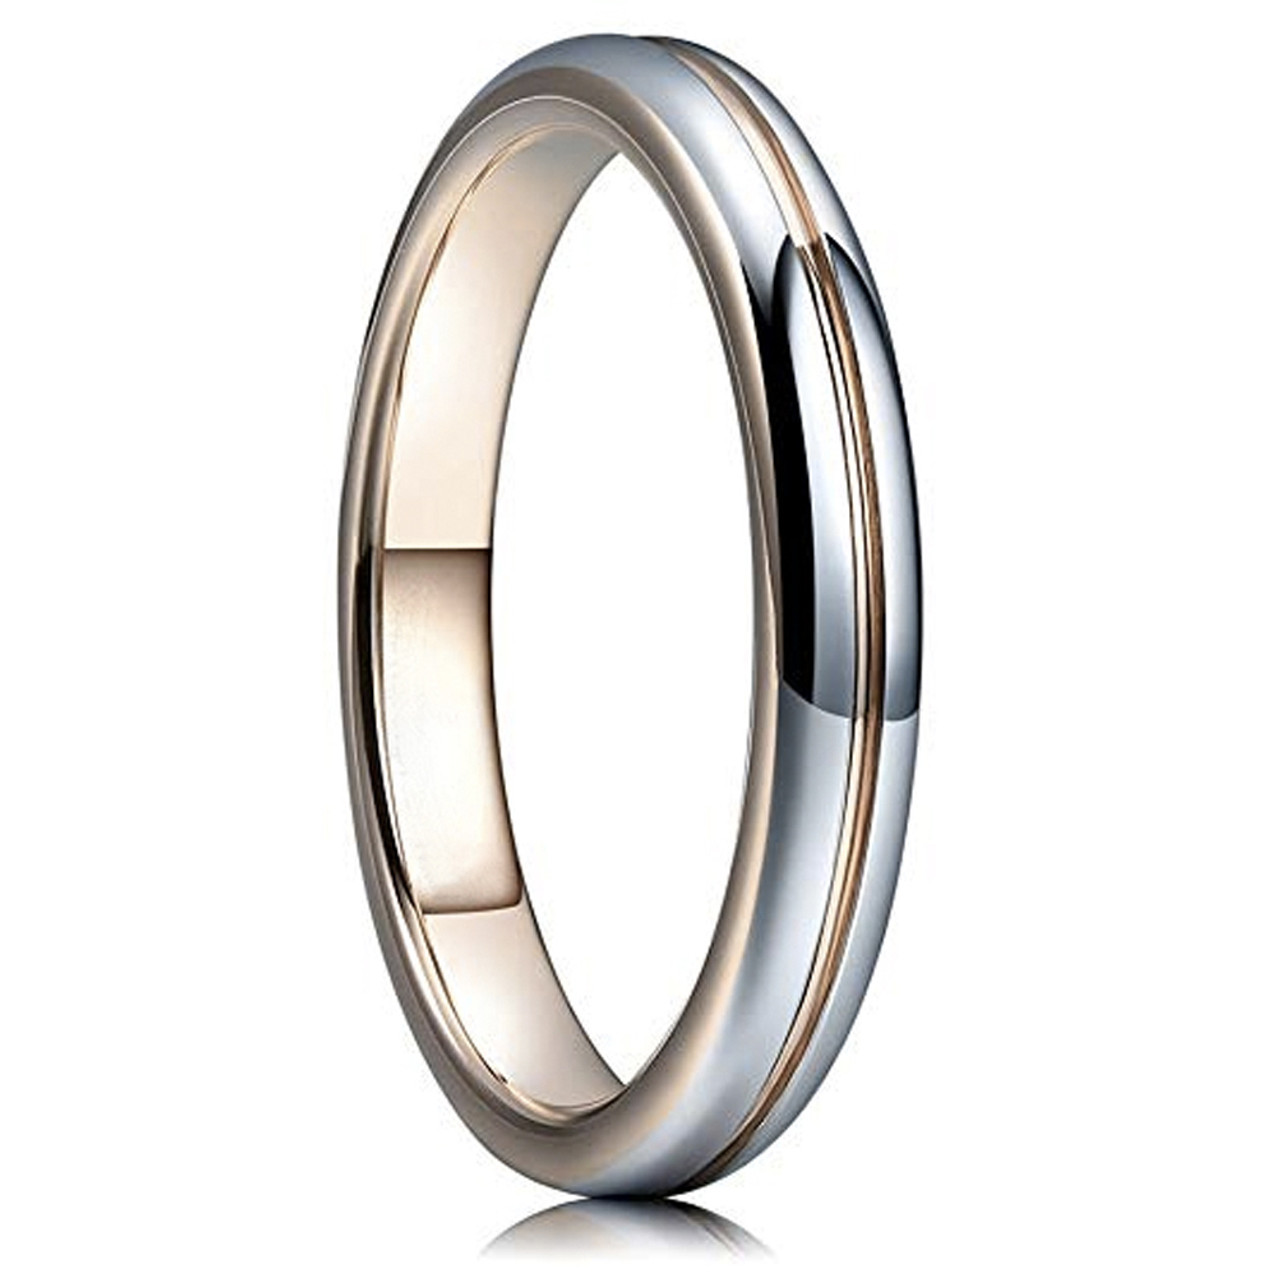 655ccd7b35c80 (3mm) Unisex or Women's Tungsten Carbide Wedding ring band Ring. Shiny  Polished Gray and Rose Gold Groove Round Domed Comfort Fit. Wedding ring  bands